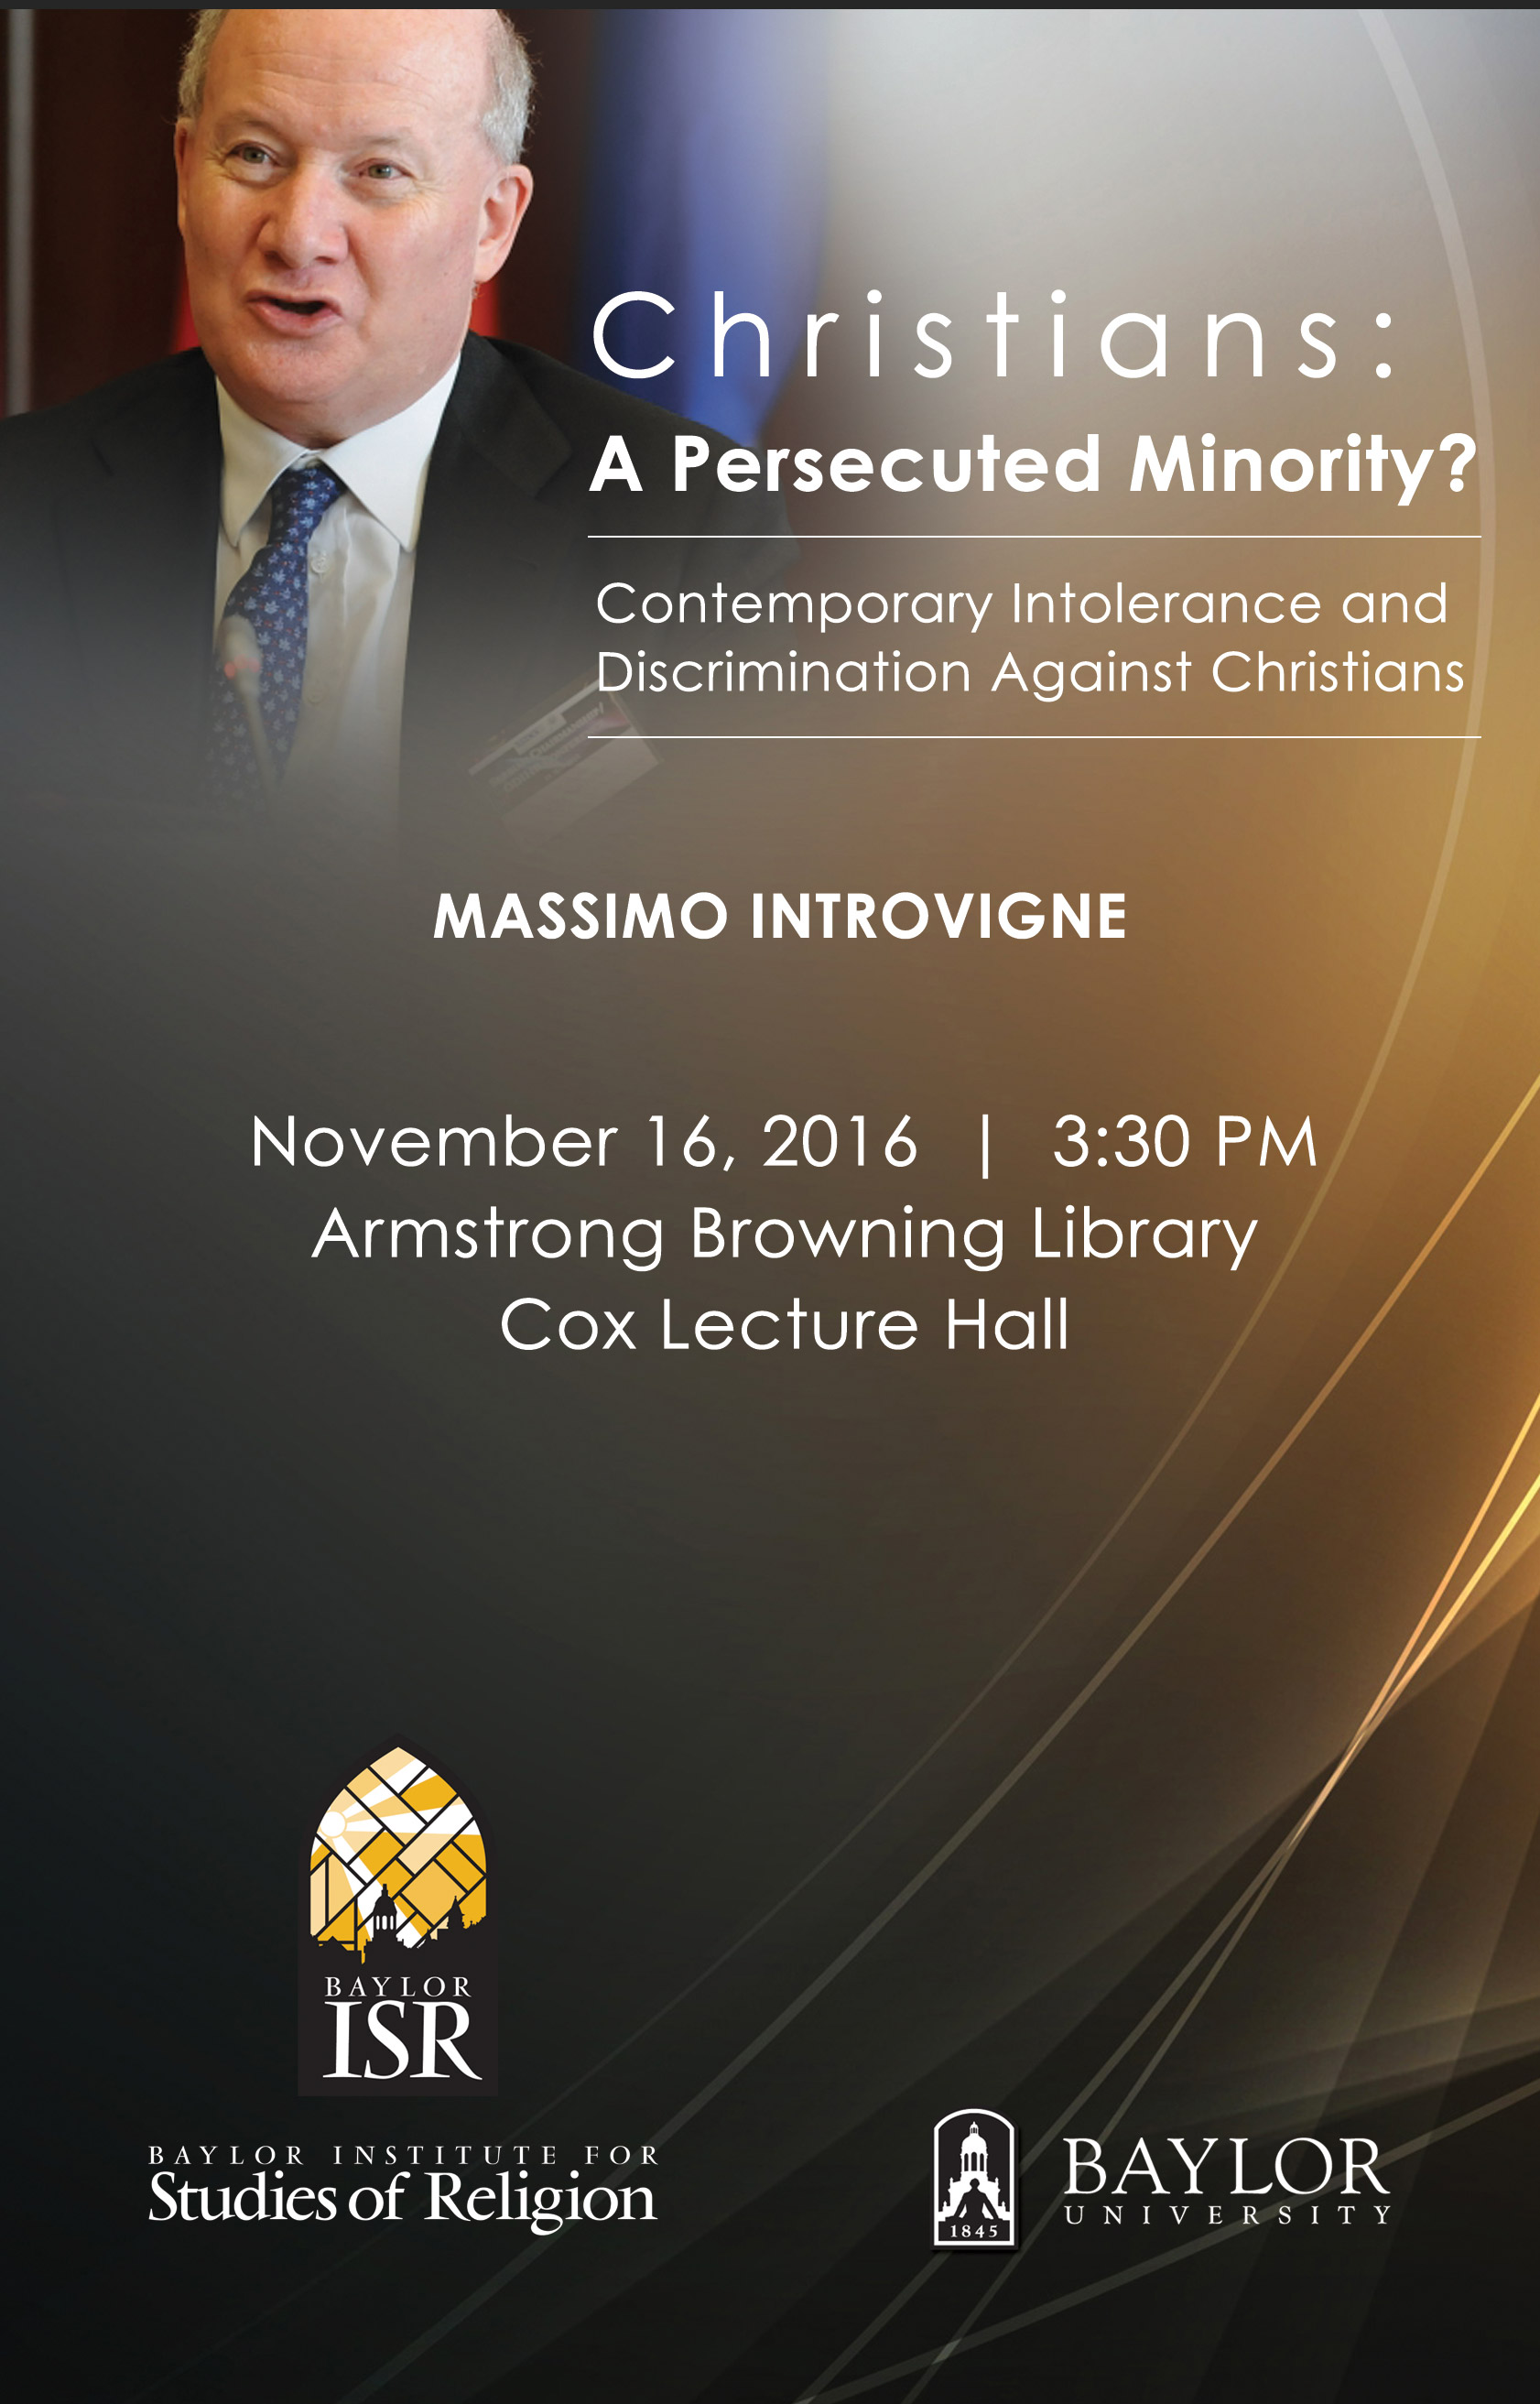 Massimo Introvigne Lecture @ Cox Lecture Hall, Armstrong Browning Library, Baylor University